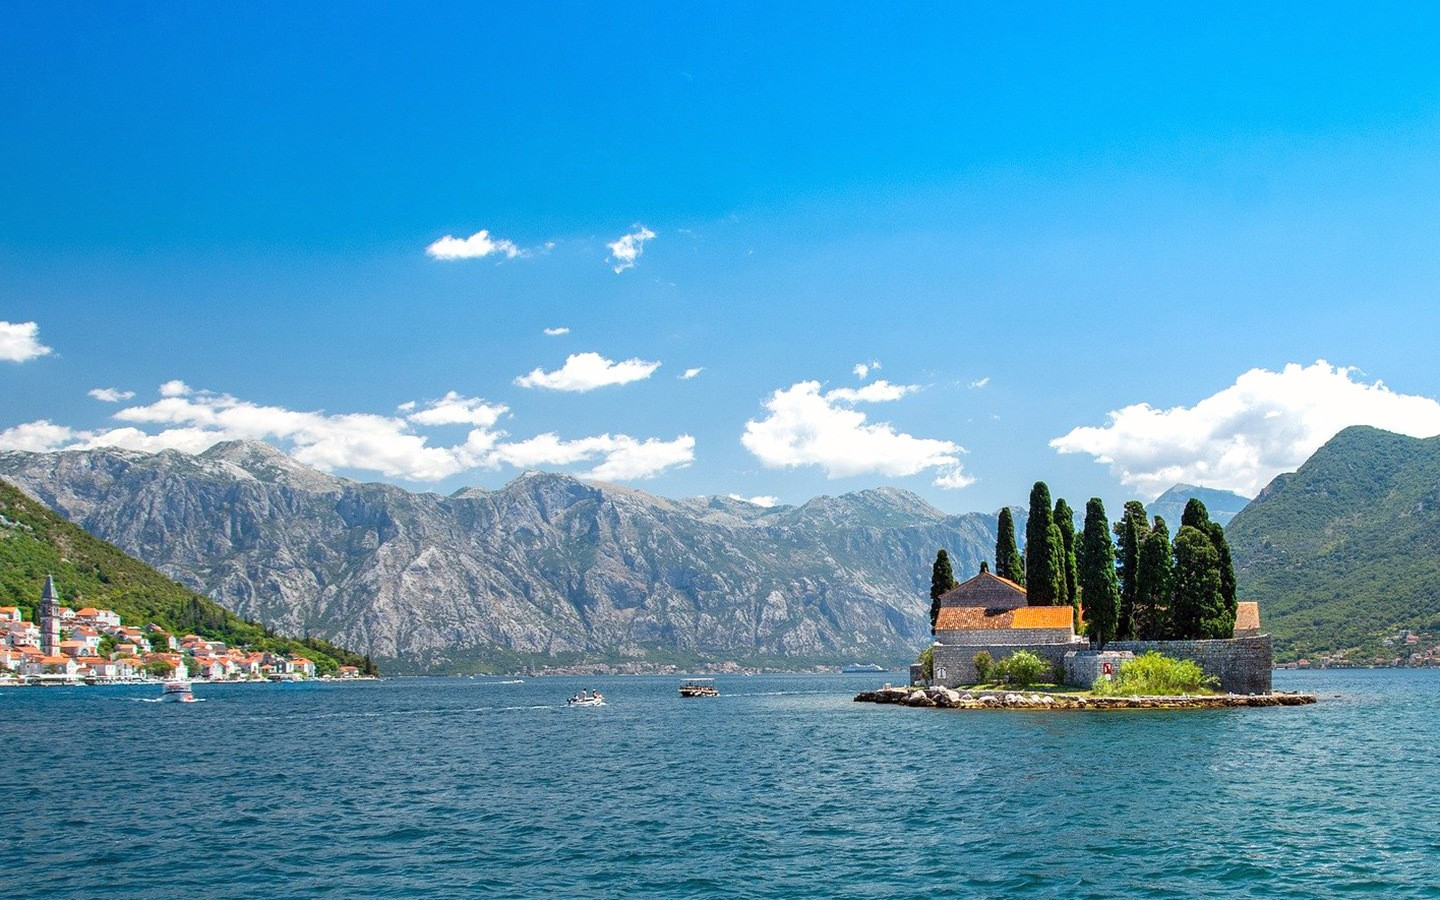 The island of Our Lady of the Rocks, Bay of Kotor